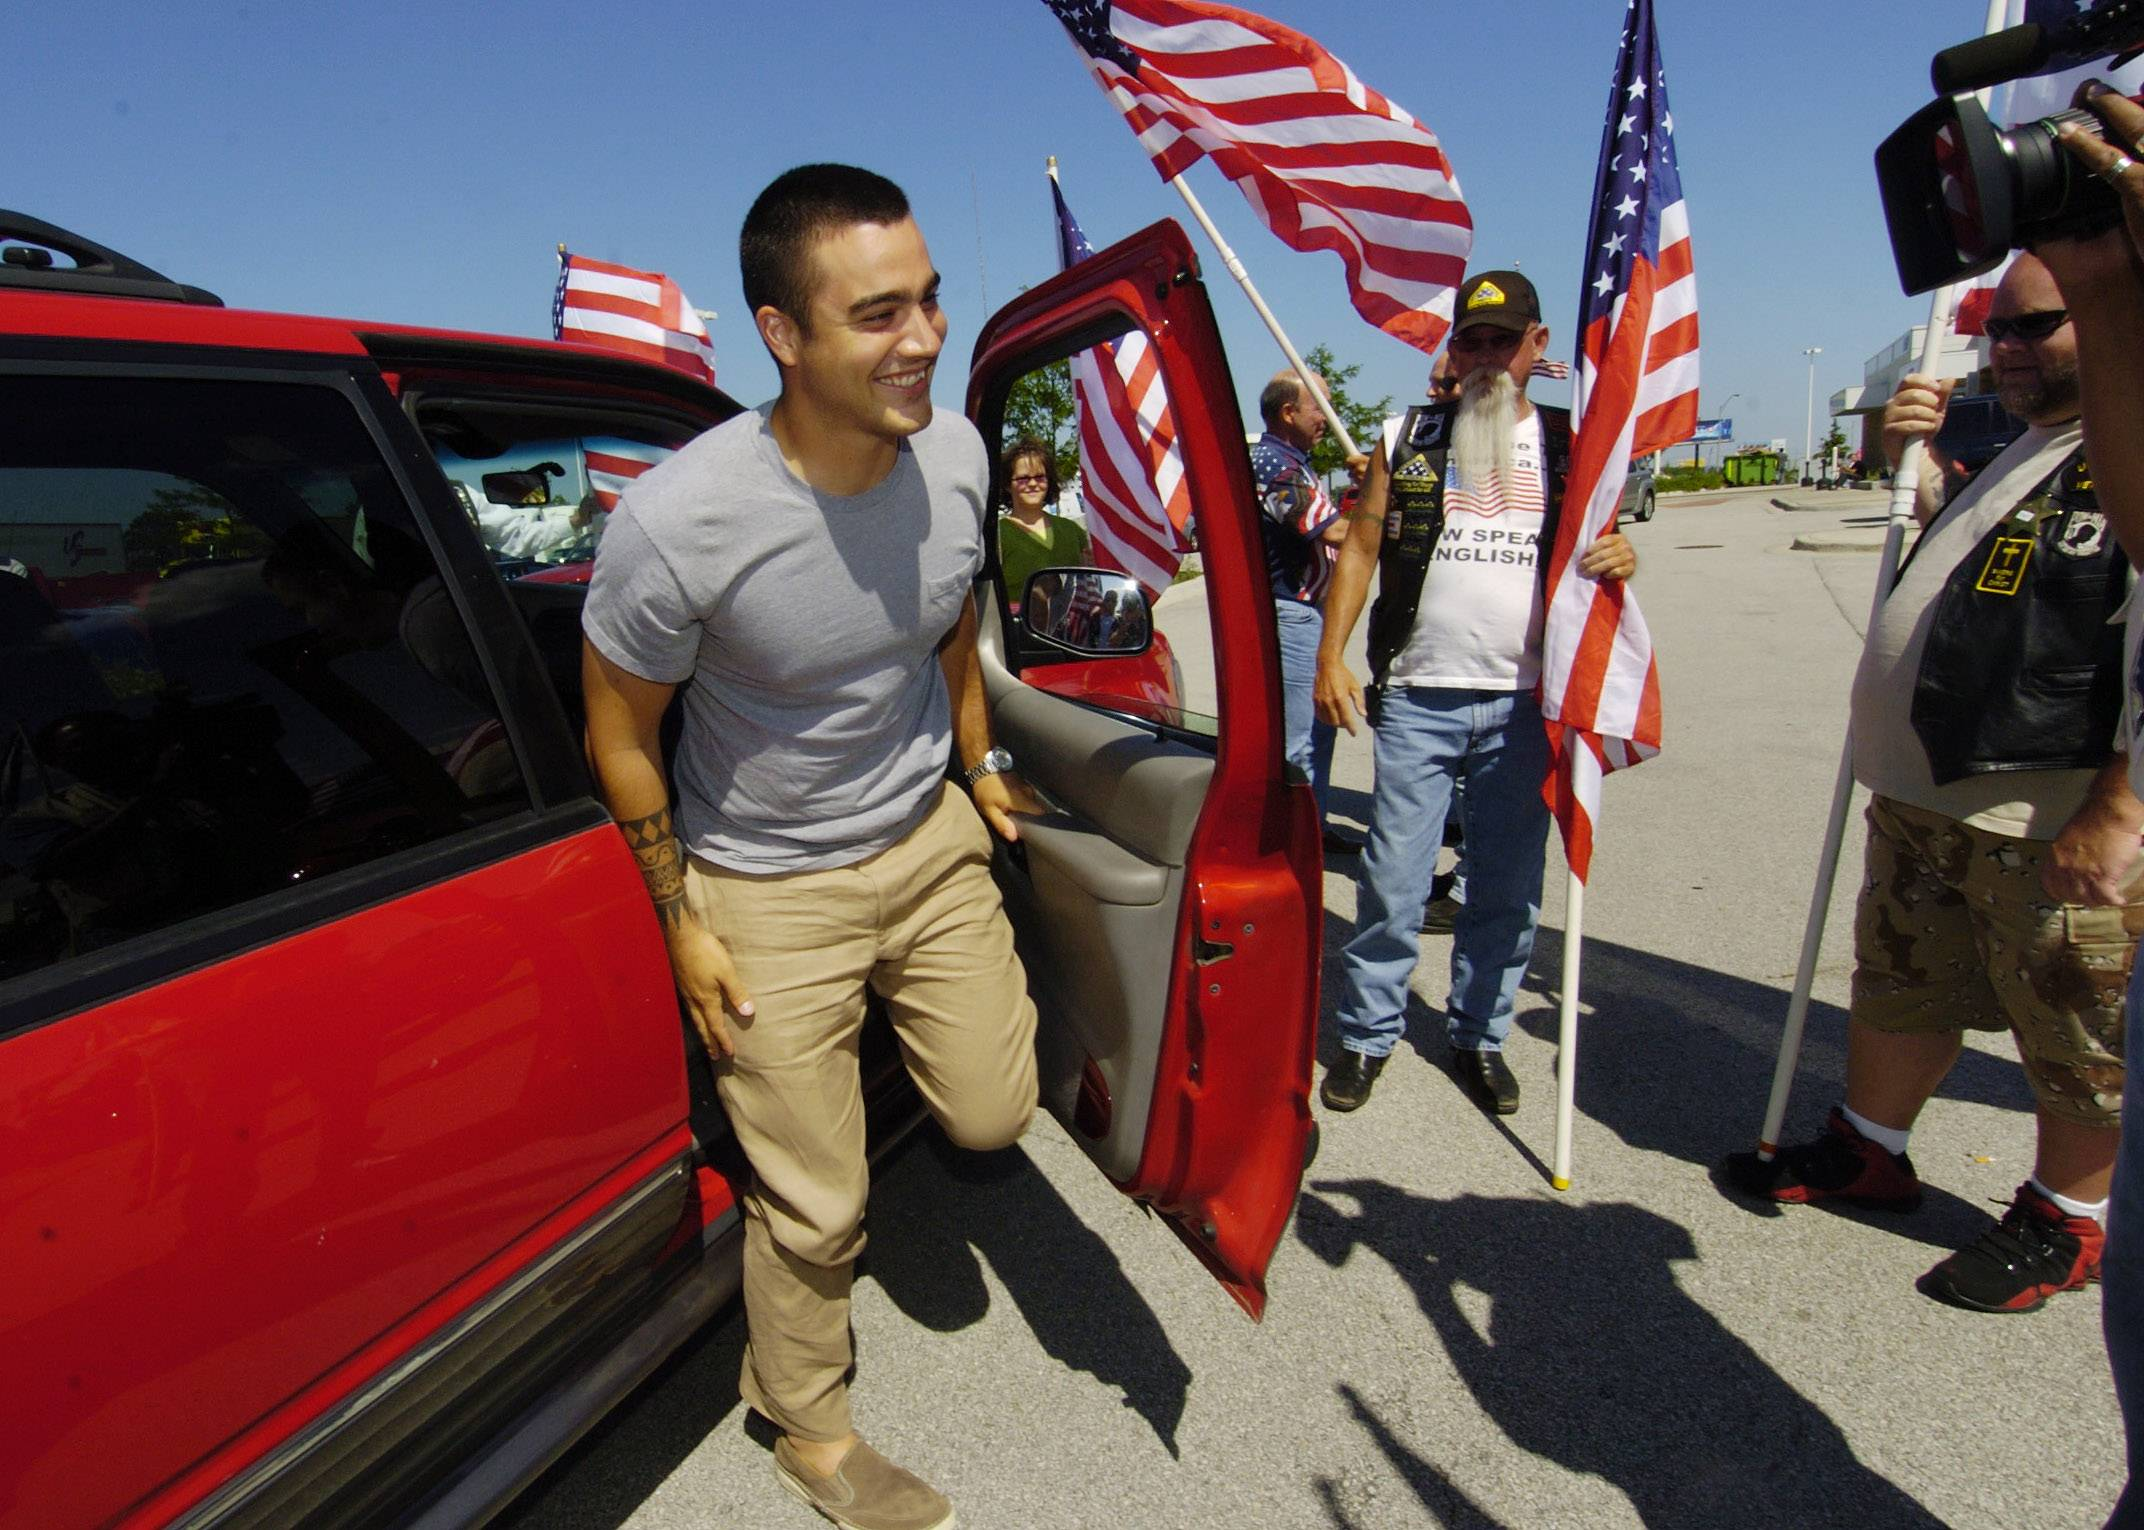 Palatine resident and U.S. Army SPC Patrick O'Connor returning home on leave being greeted by the Patriot Guard Riders at the Des Plaines oasis.